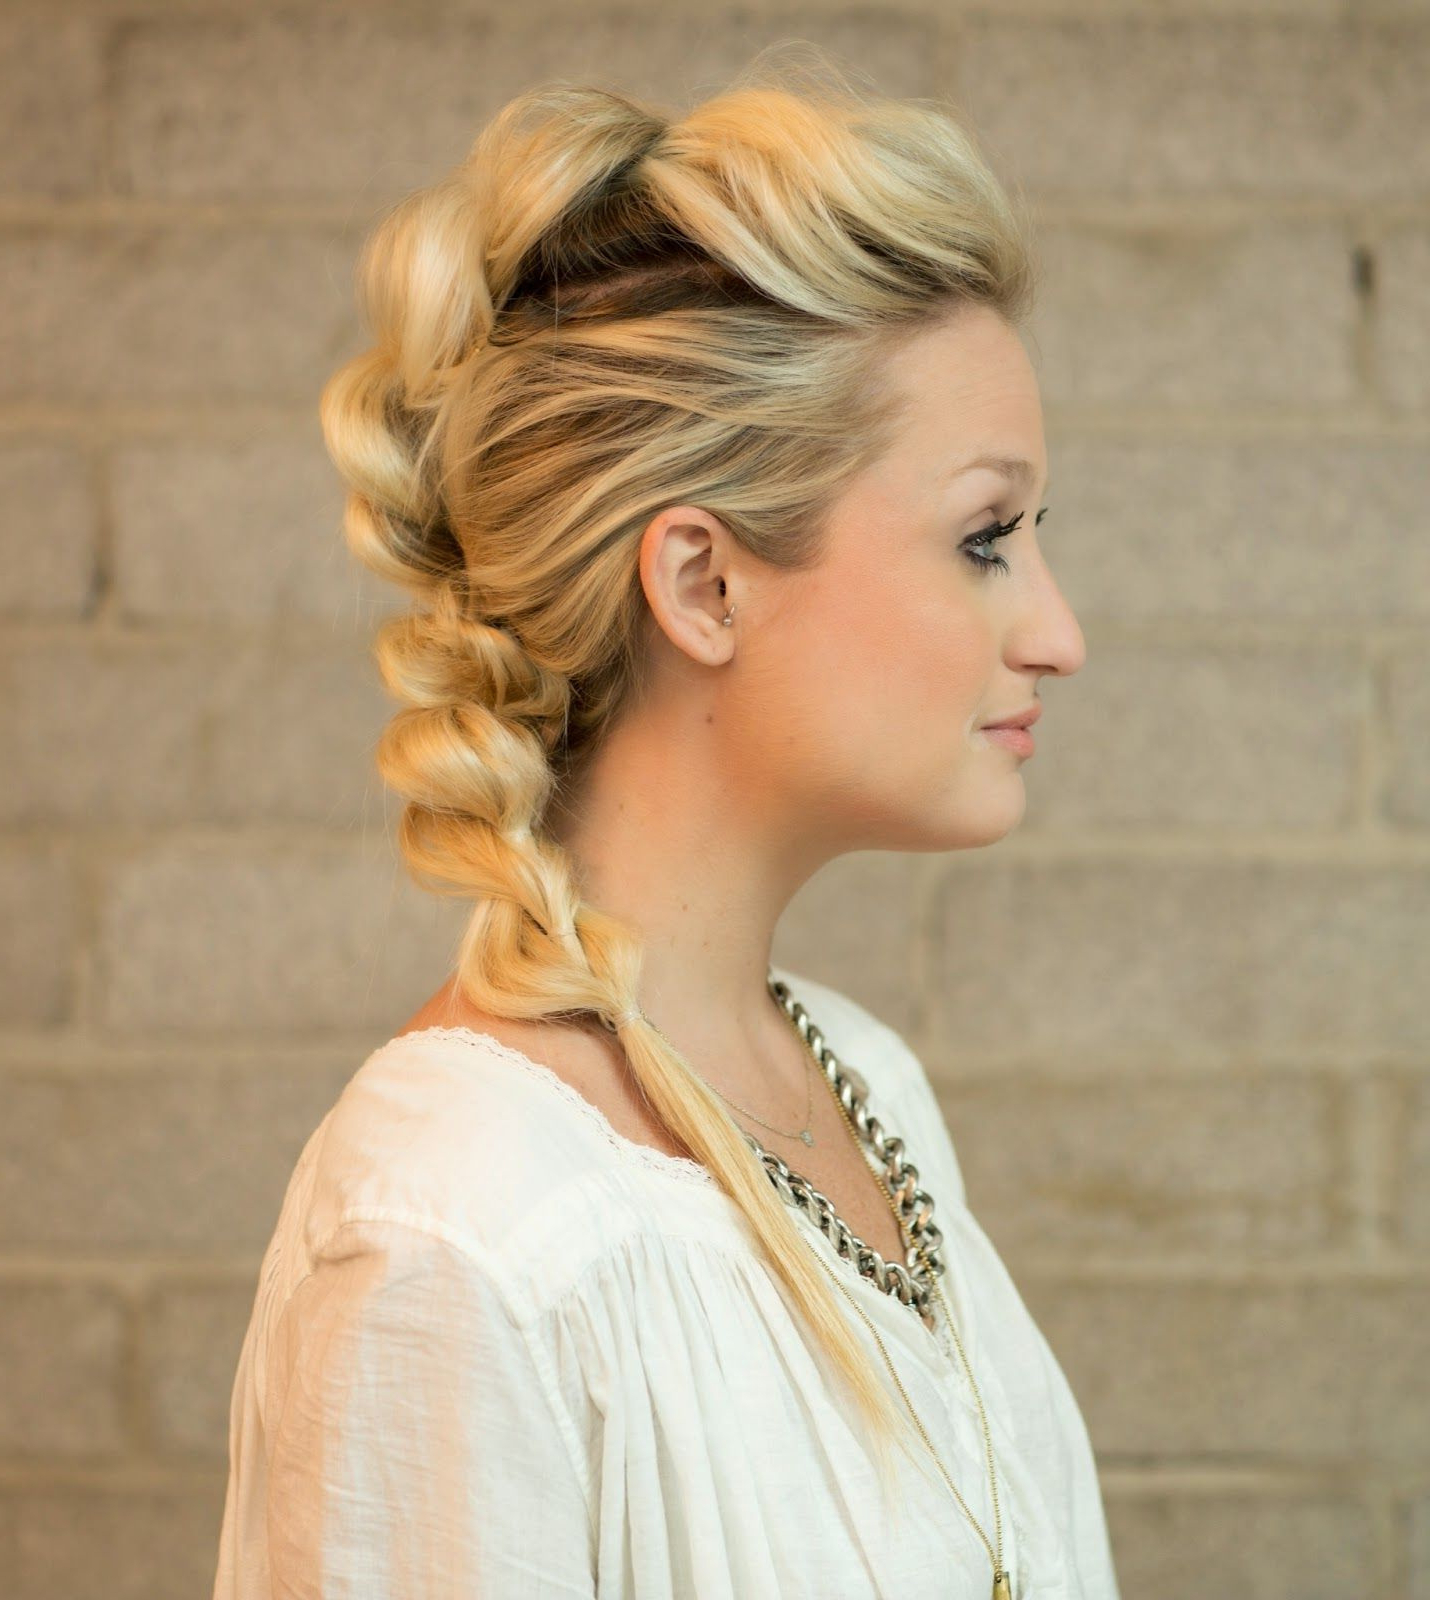 Well Liked Mohawk Updo Hairstyles For Women Intended For Hairstyles : Braided Mohawk Updo Intriguing Mohawk Fashion (Gallery 19 of 20)